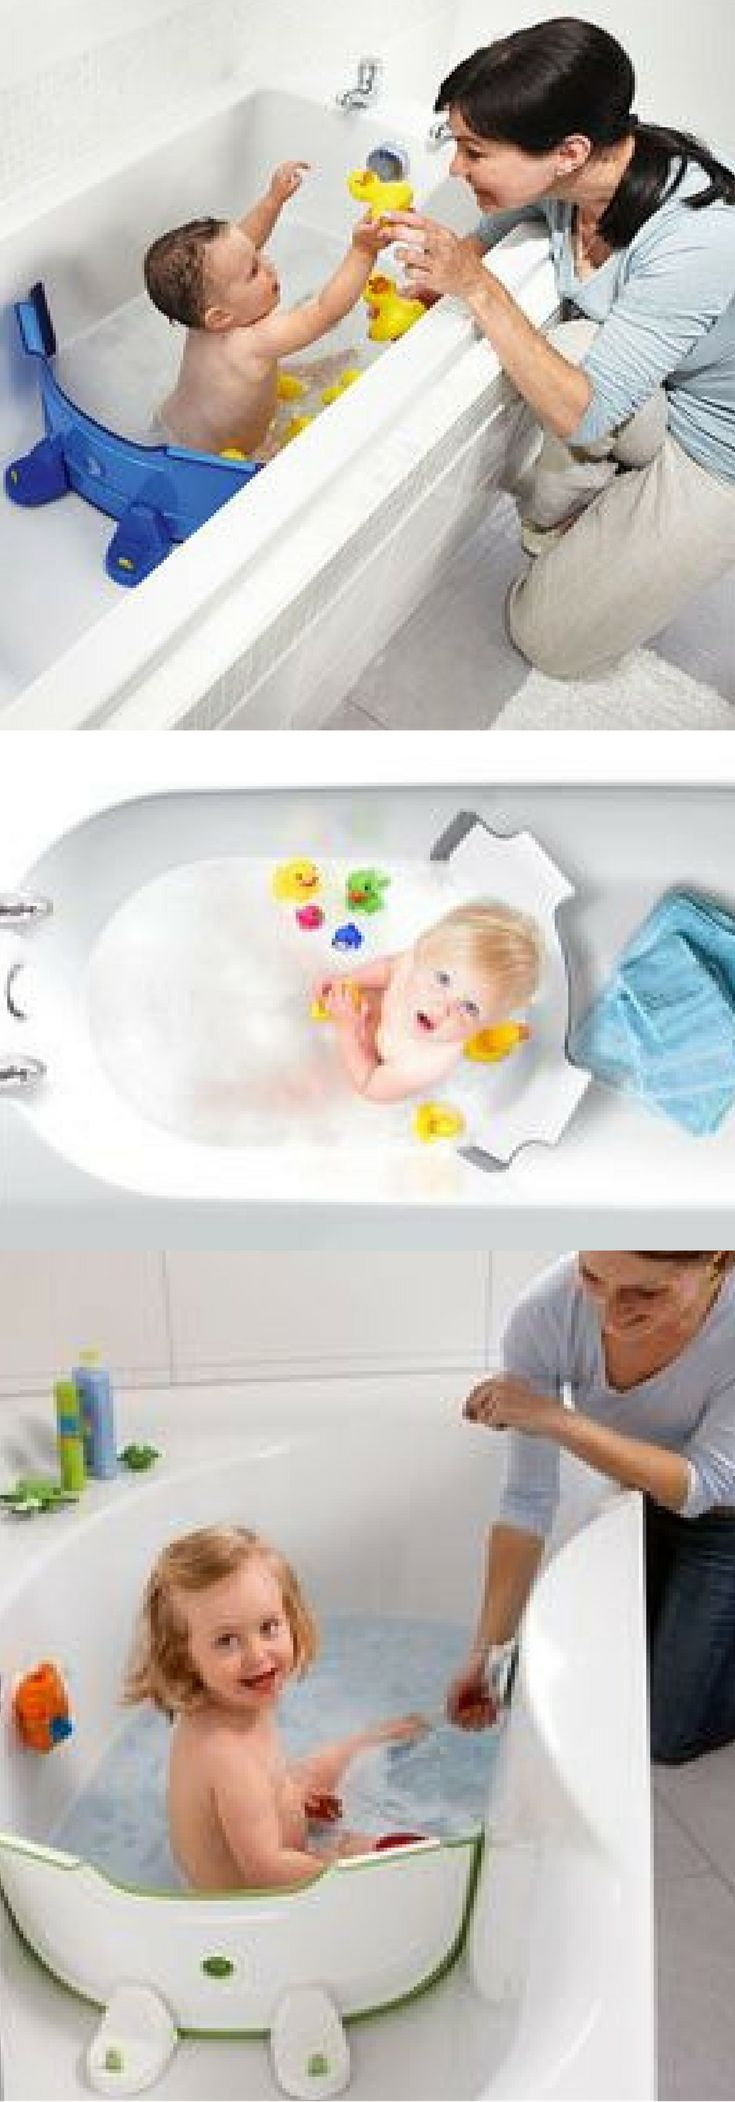 Baby Dam Bath Divider. This saves to much water during bath time! Plus it keeps all their toys close! Such a great gift idea for a mom-to-be!